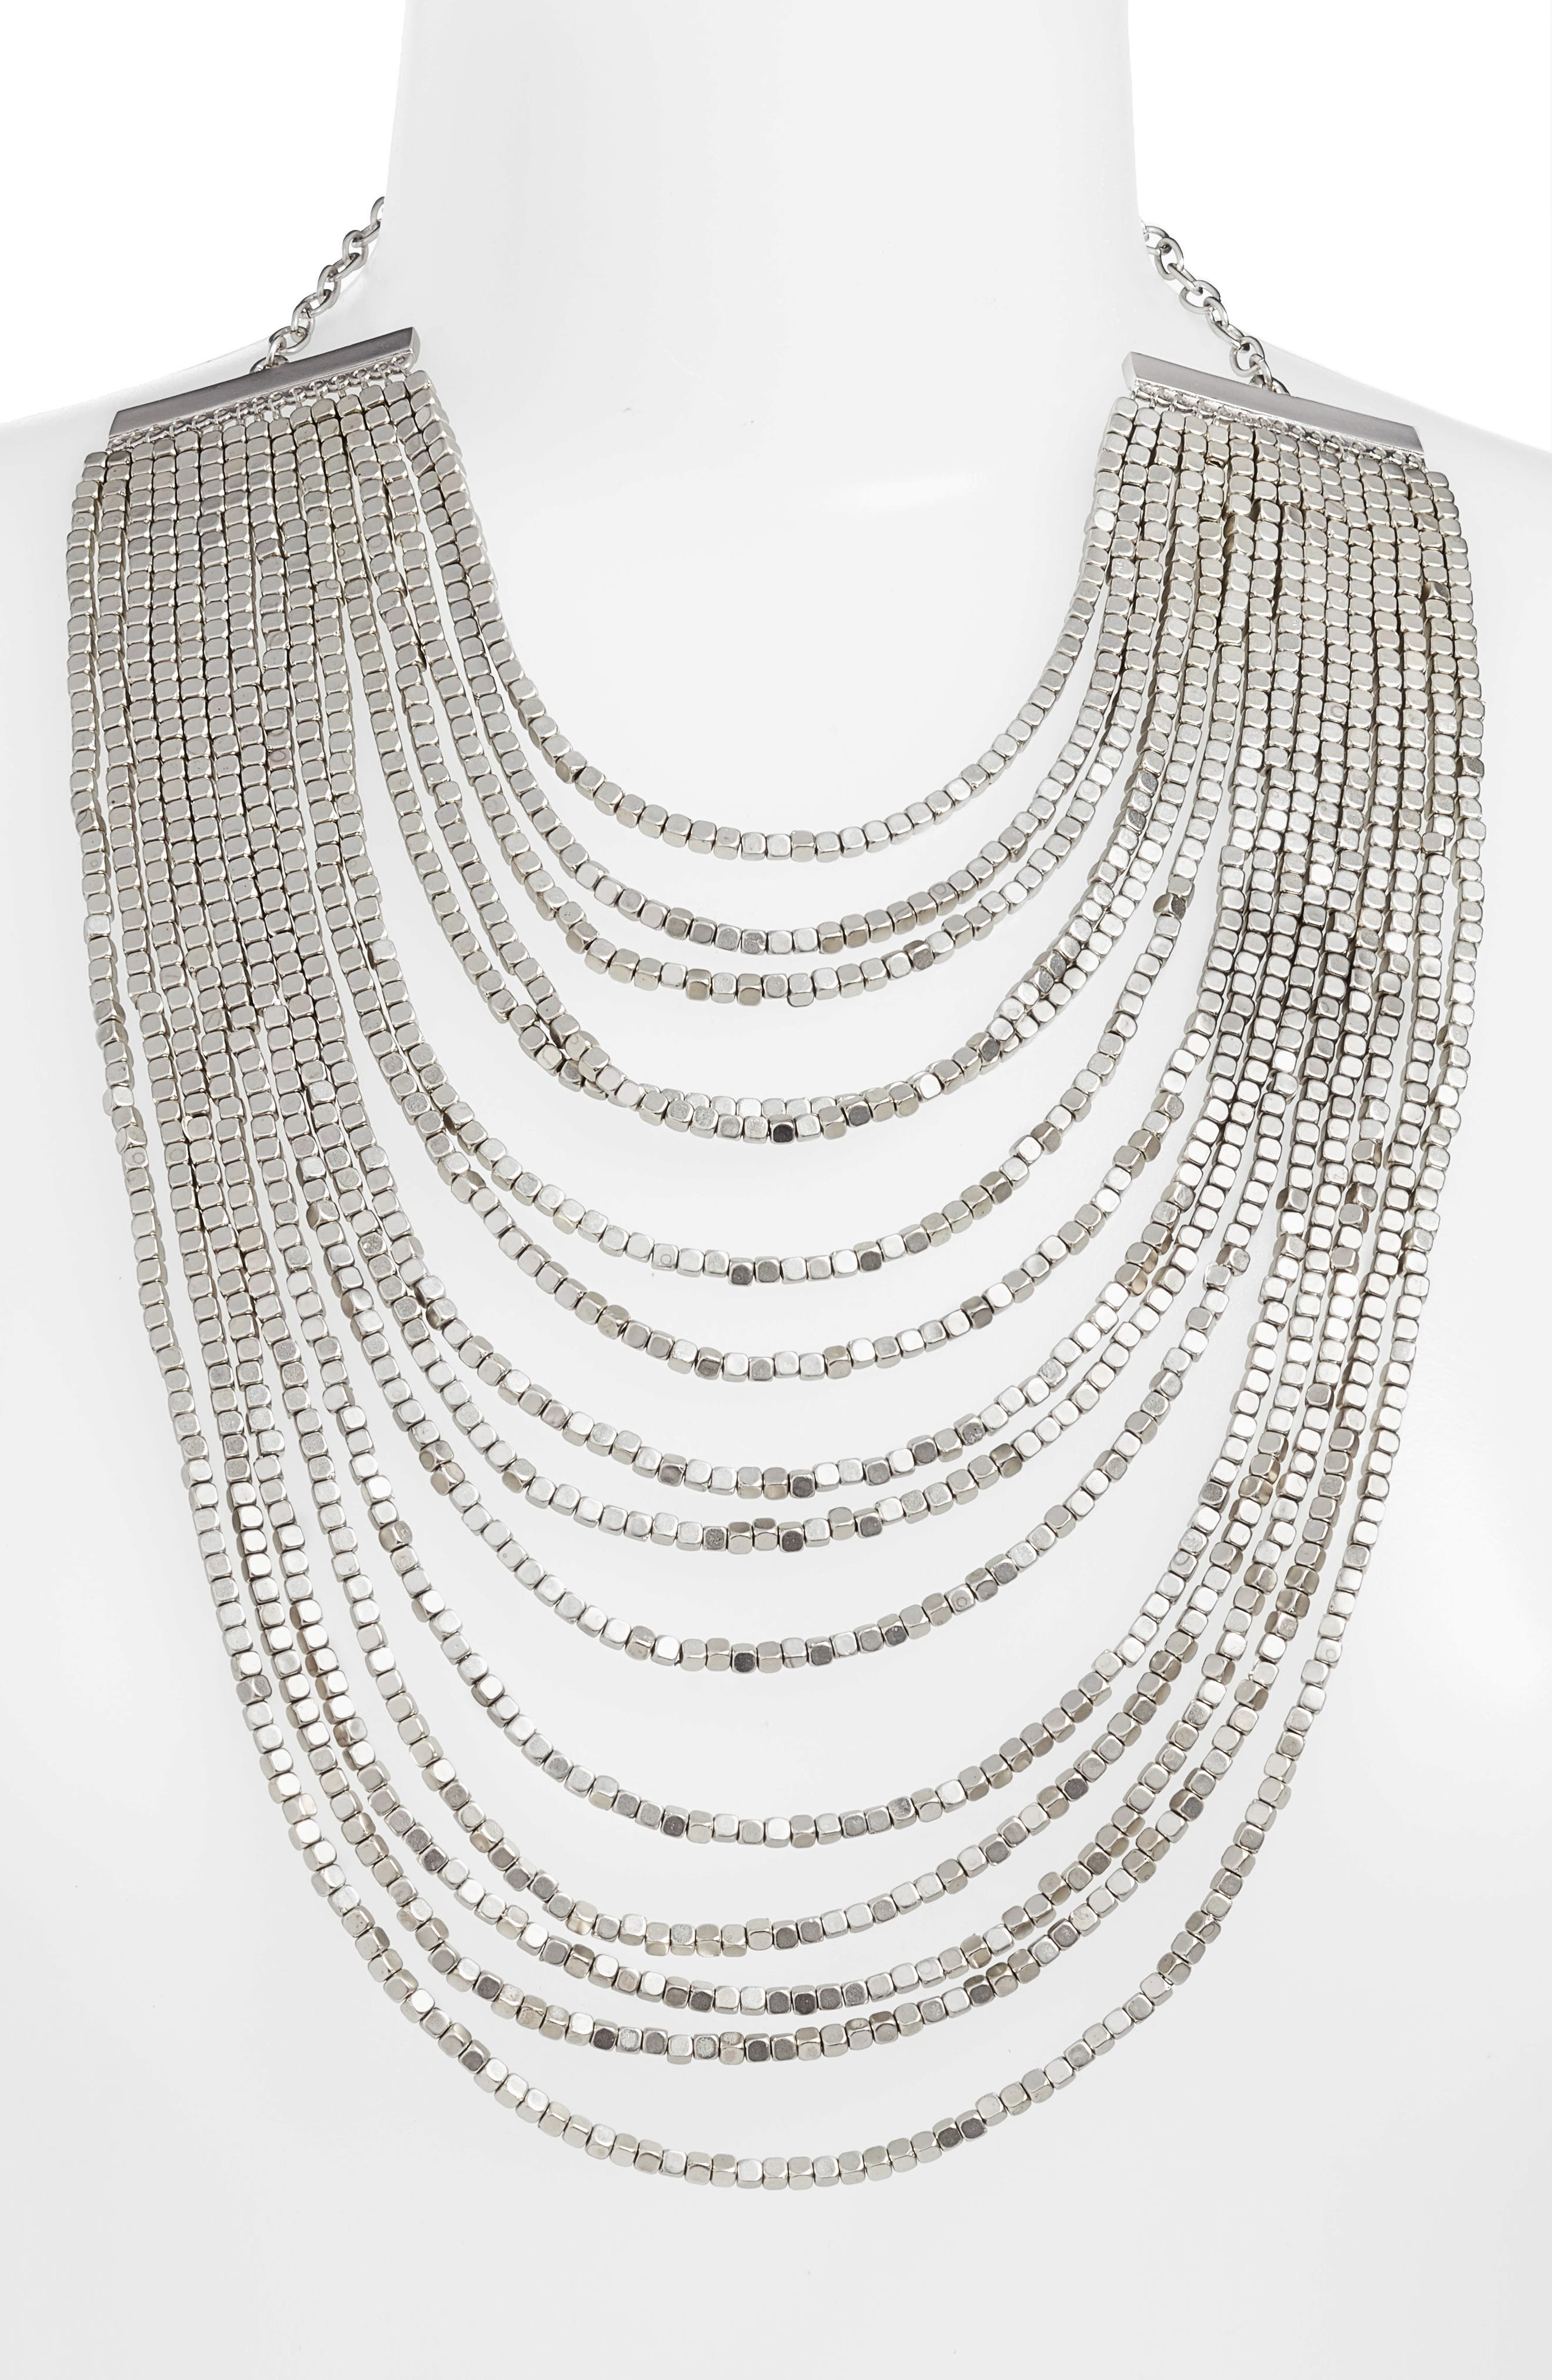 Joan Beaded Multistrand Necklace,                             Alternate thumbnail 2, color,                             SILVER